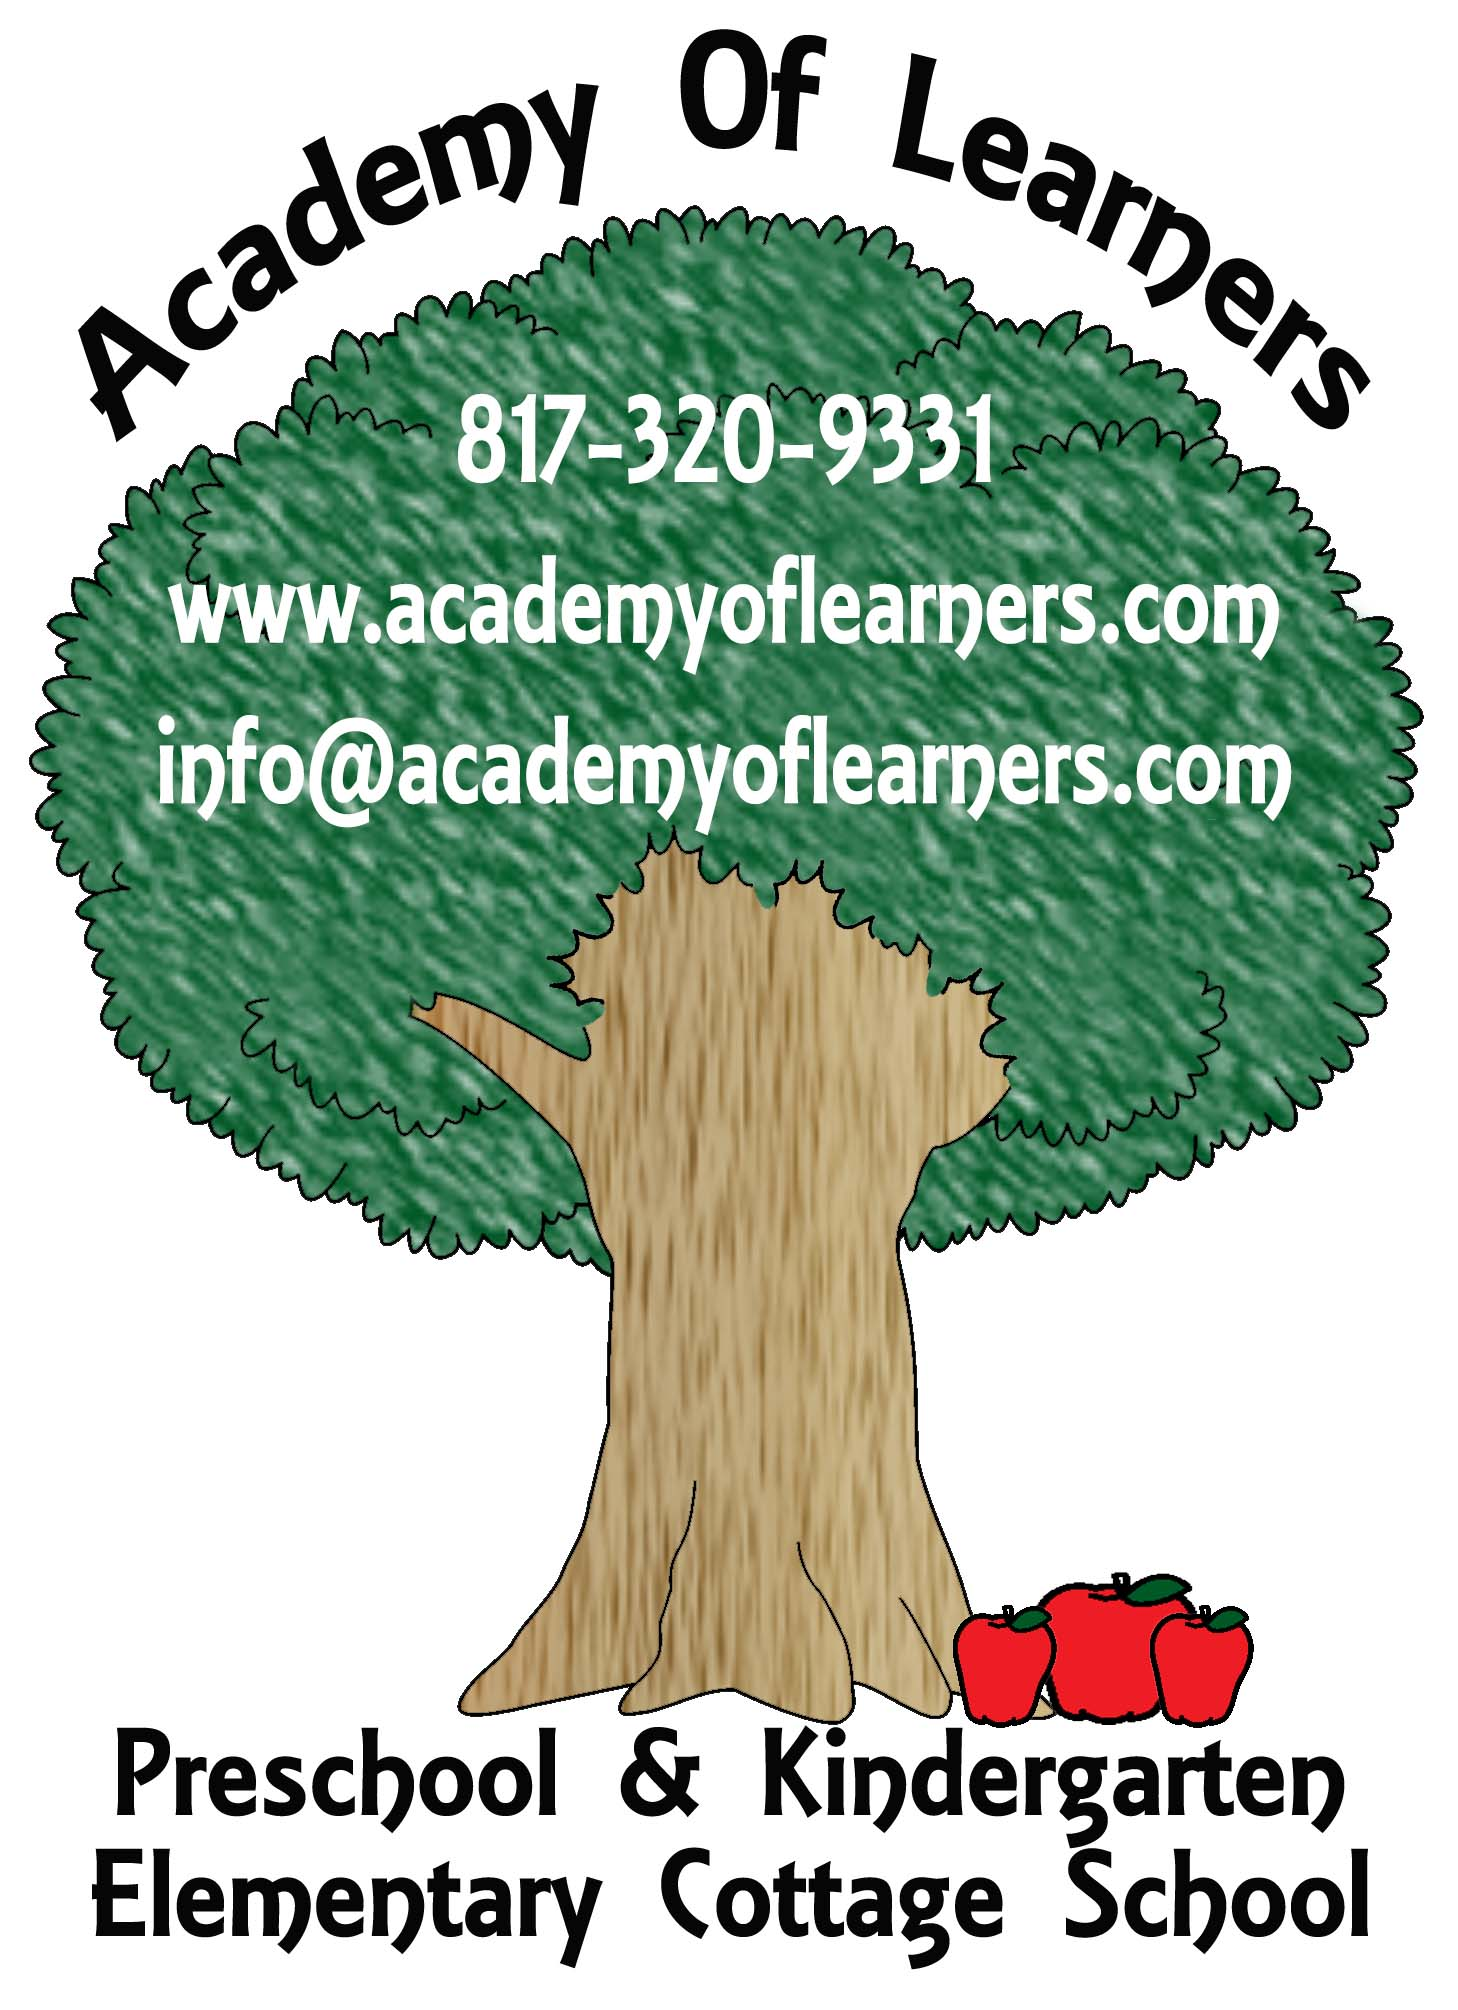 Academy Of Learners